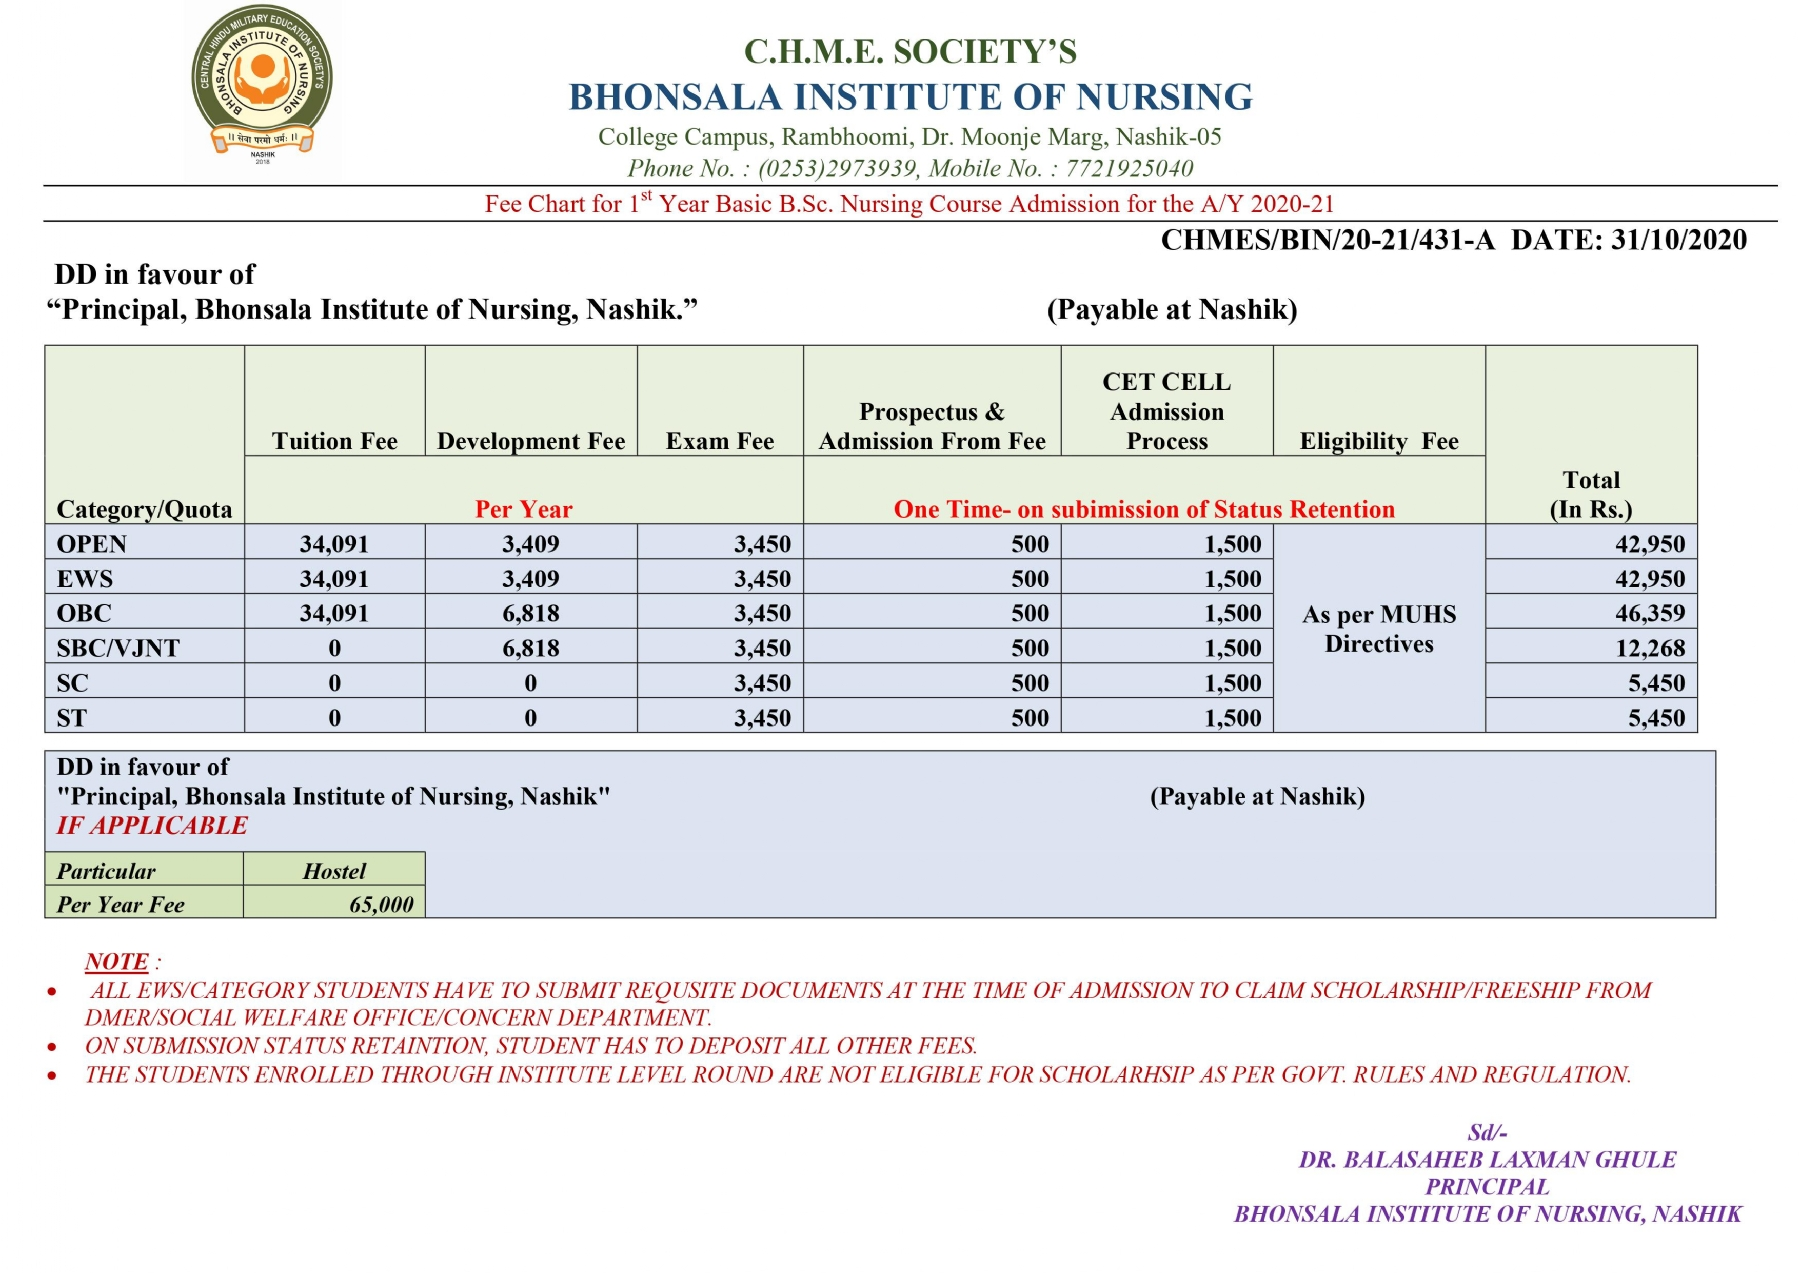 APPROVED FEE STRUCTURE FO